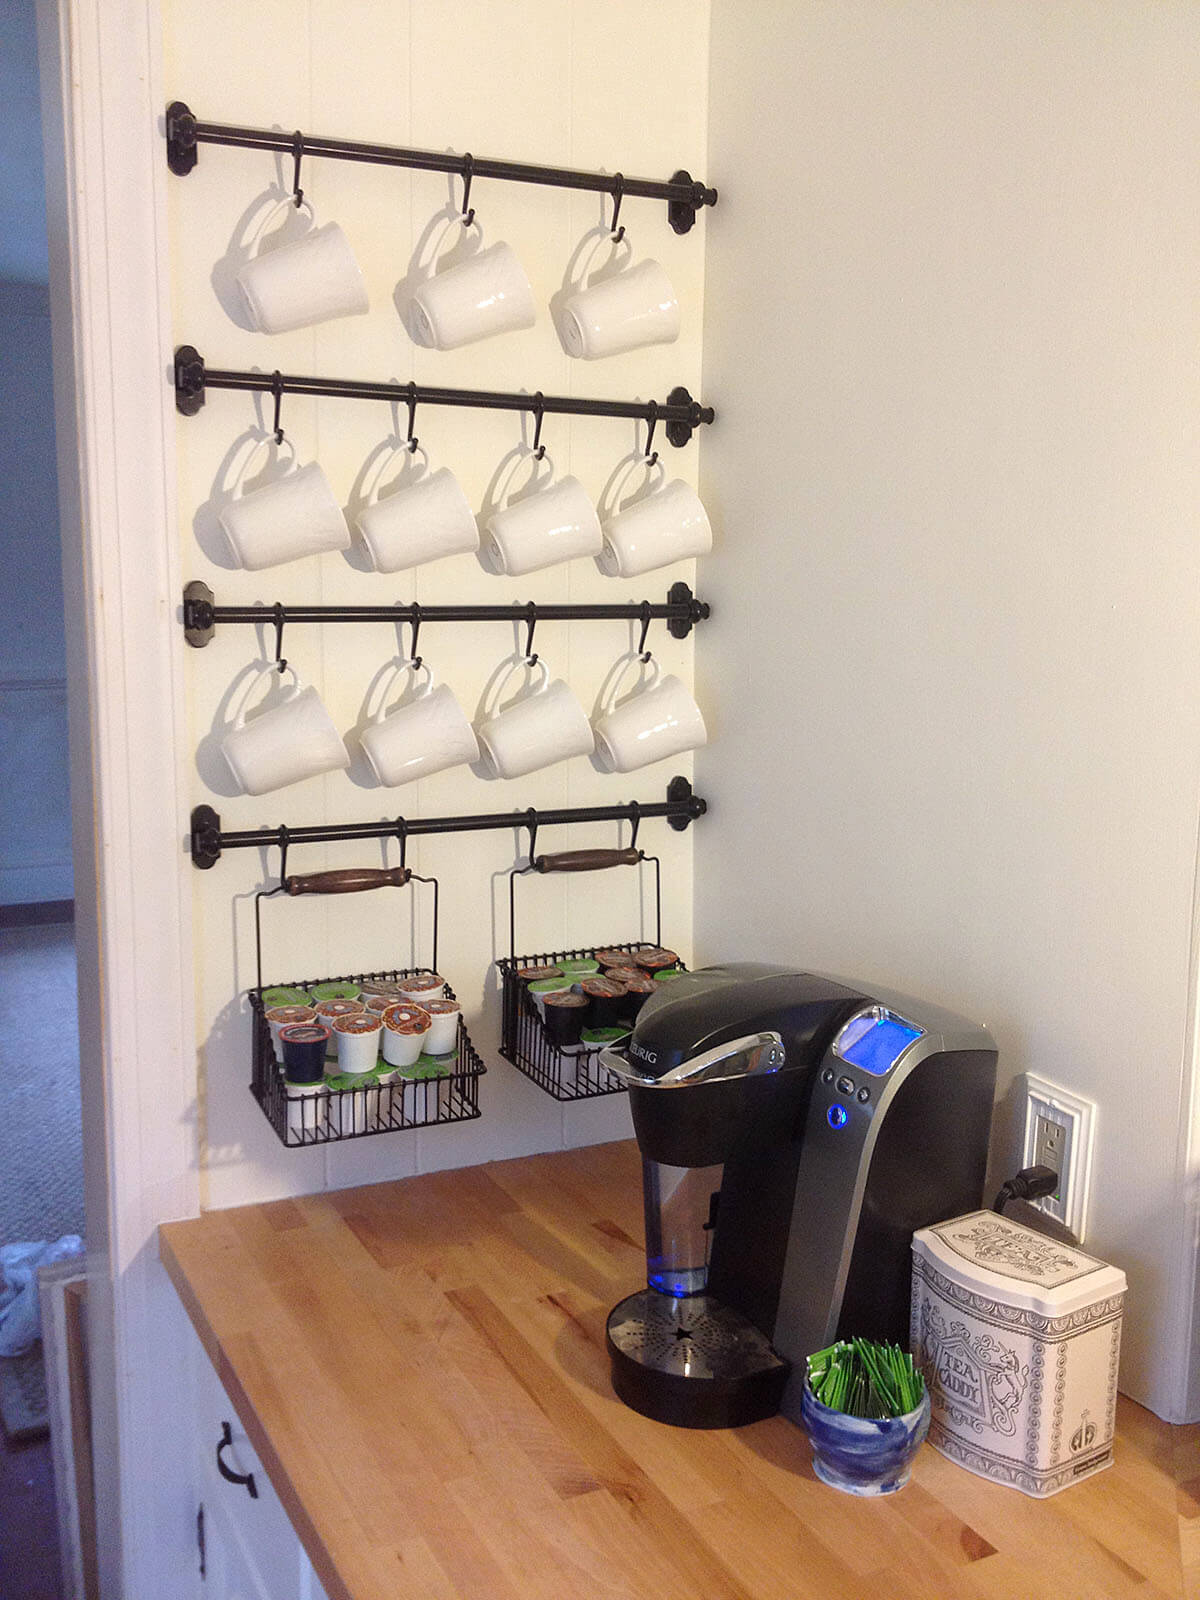 Awesome Wall Mounted Pipes With Mug Hooks And Storage Caddies